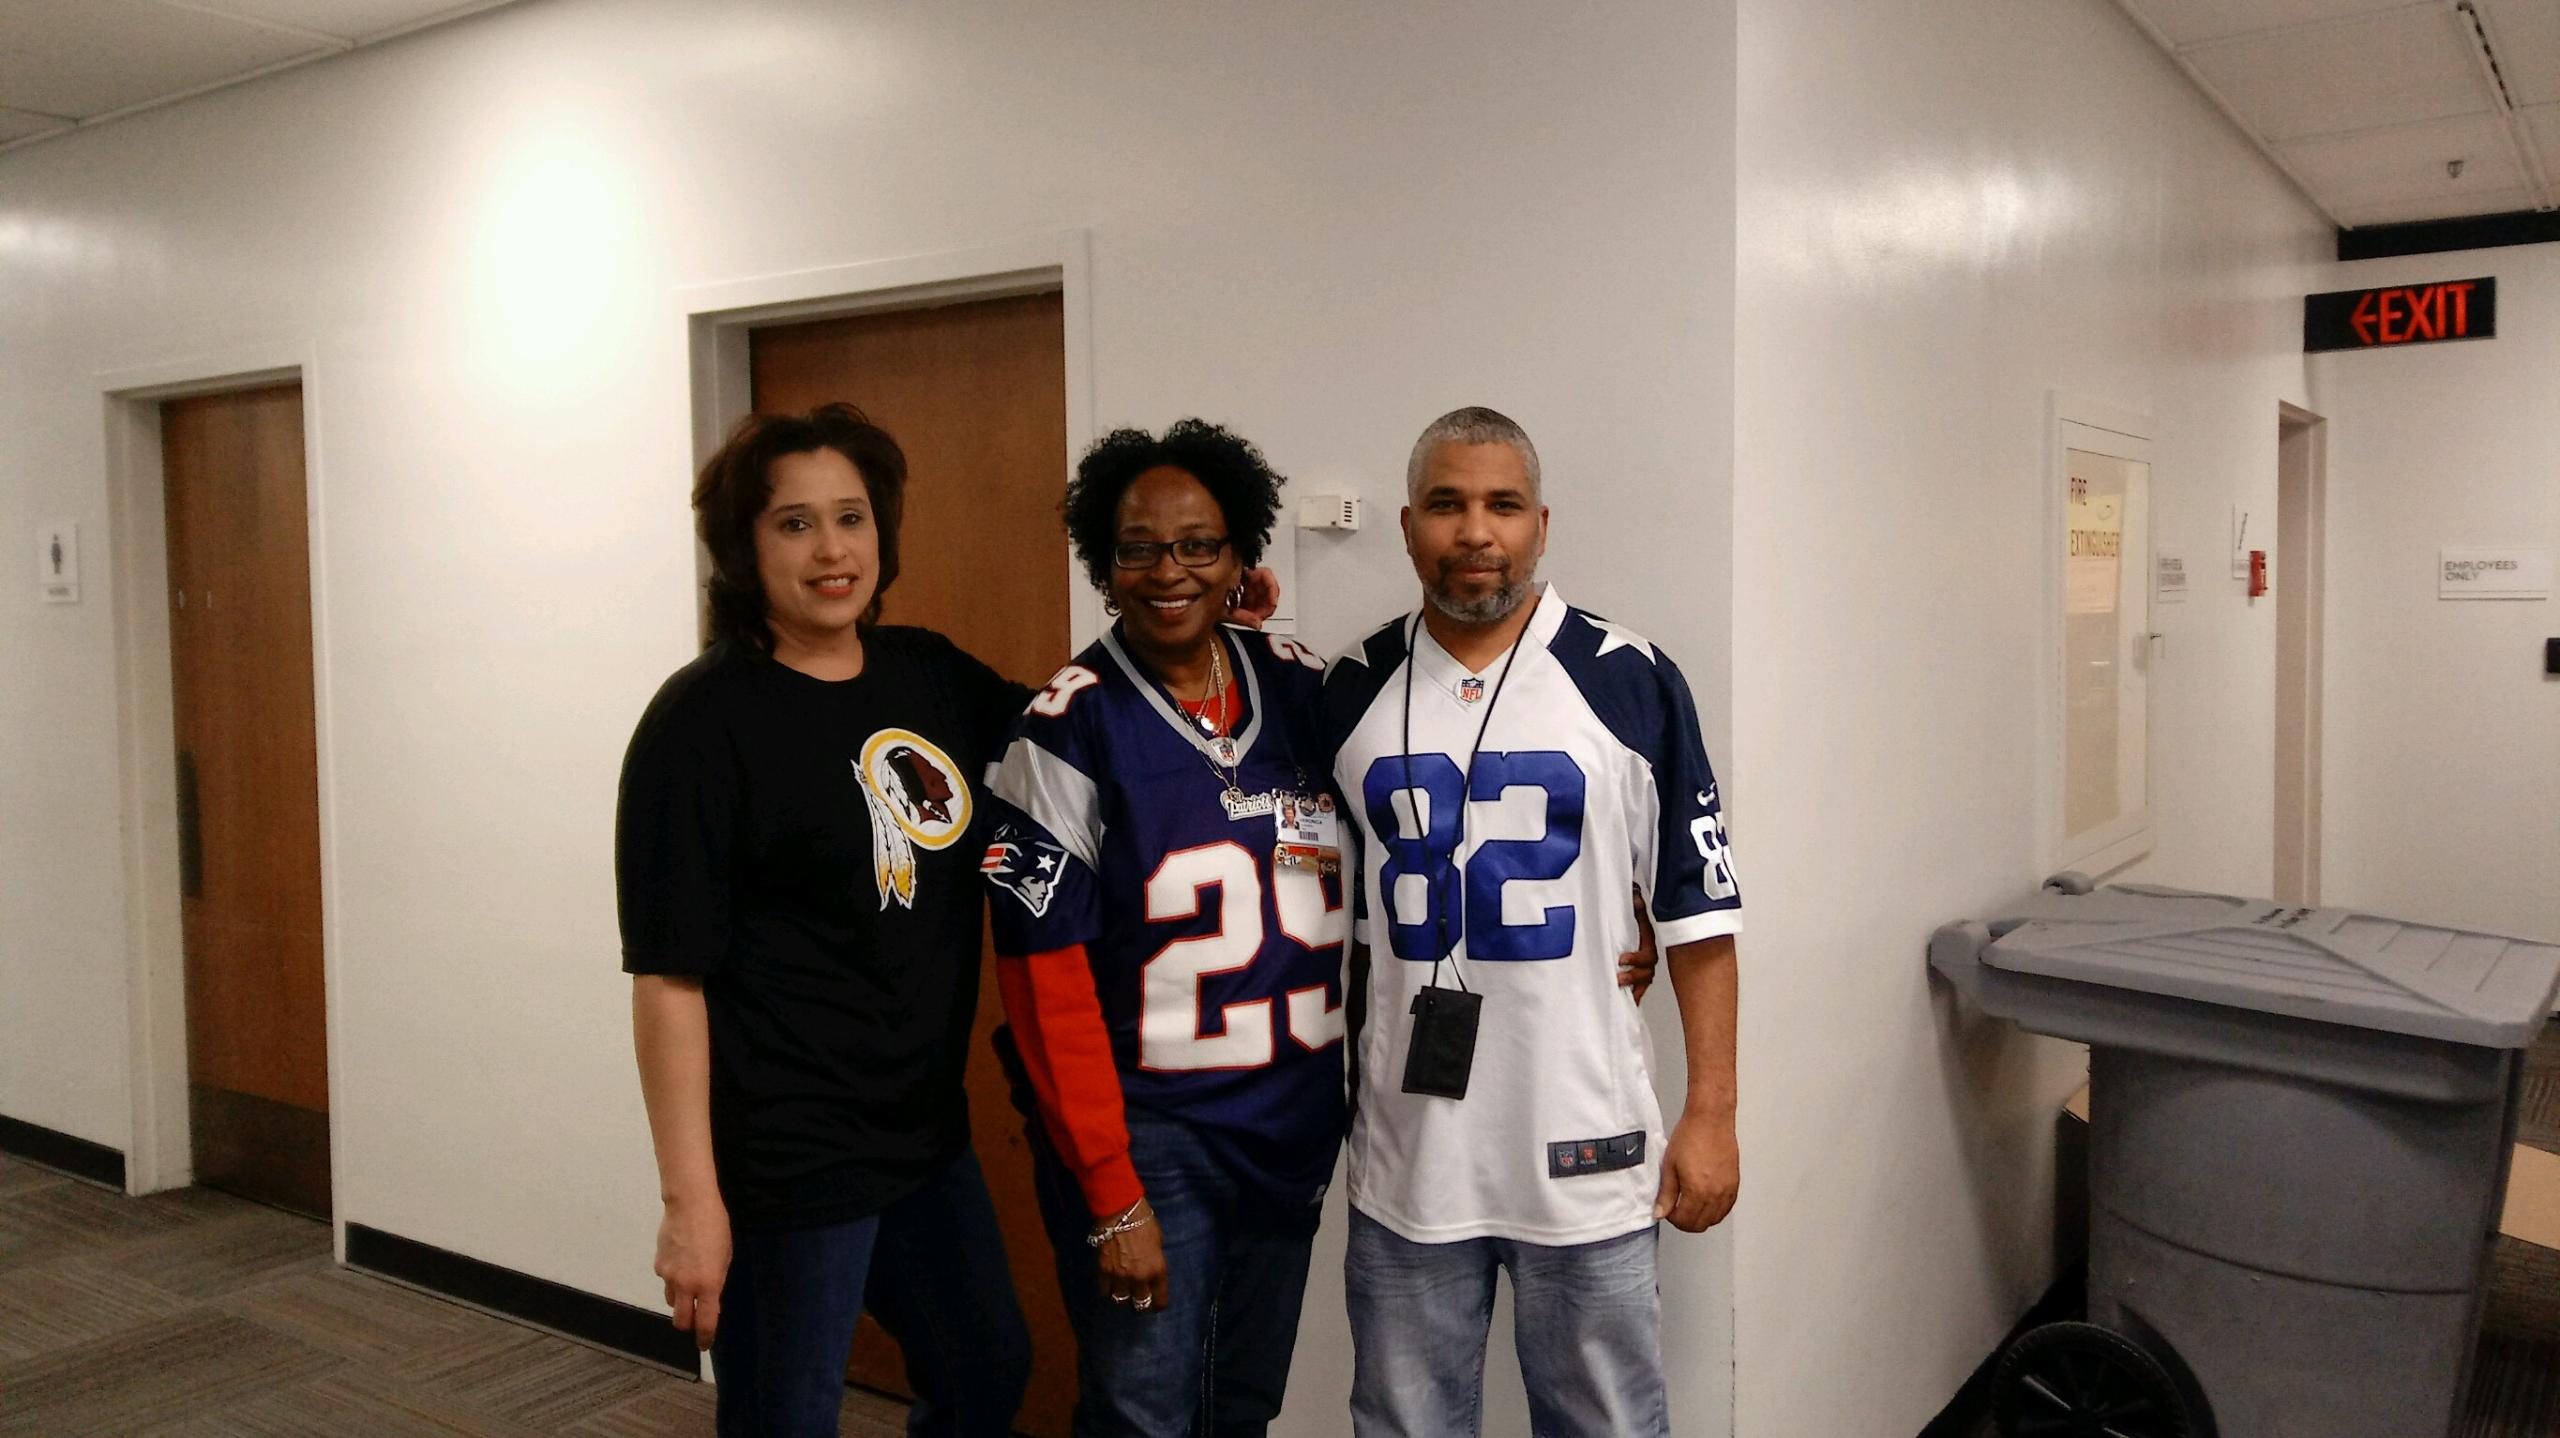 Tammi Lee (Council office), Veronica Johnson (Fire), and Terry Moody (IT) show off team spirit.